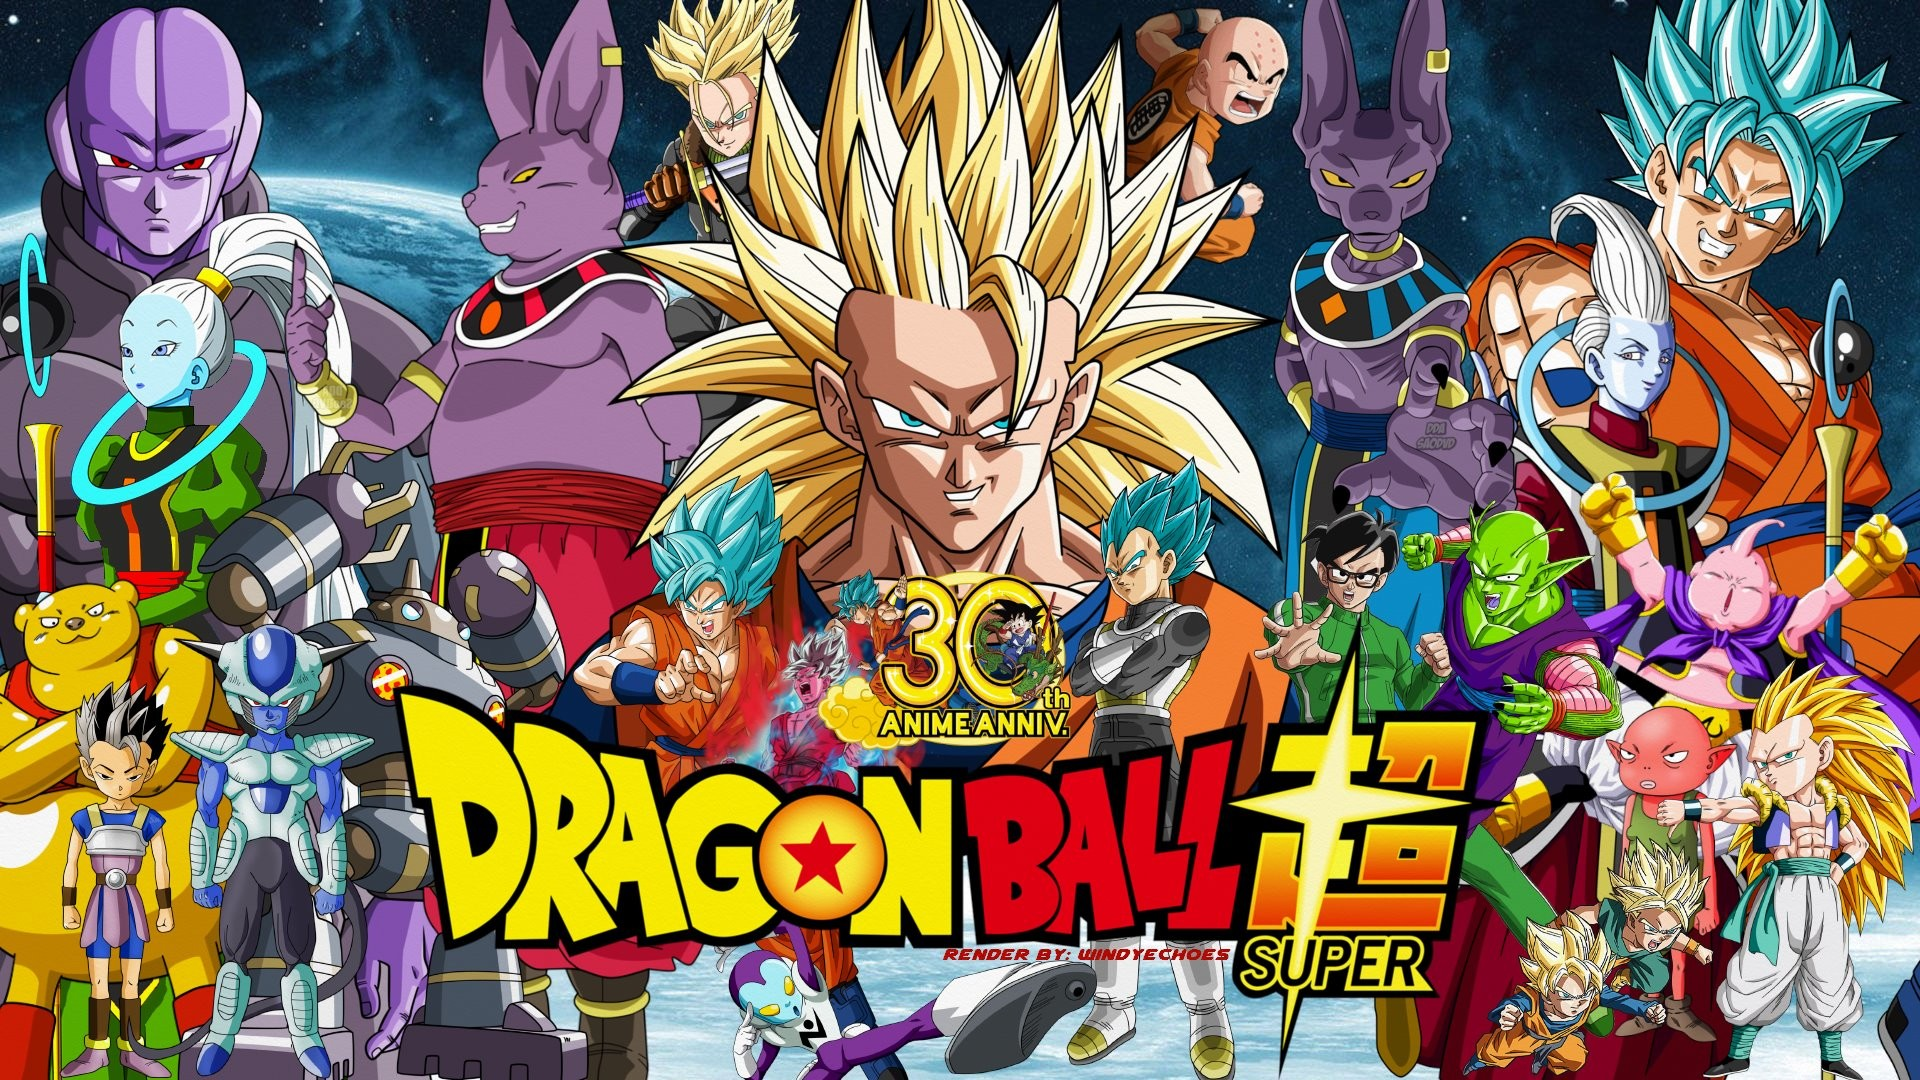 … Dragon Ball Super 30th Anniversary Wallpaper # 1 by WindyEchoes